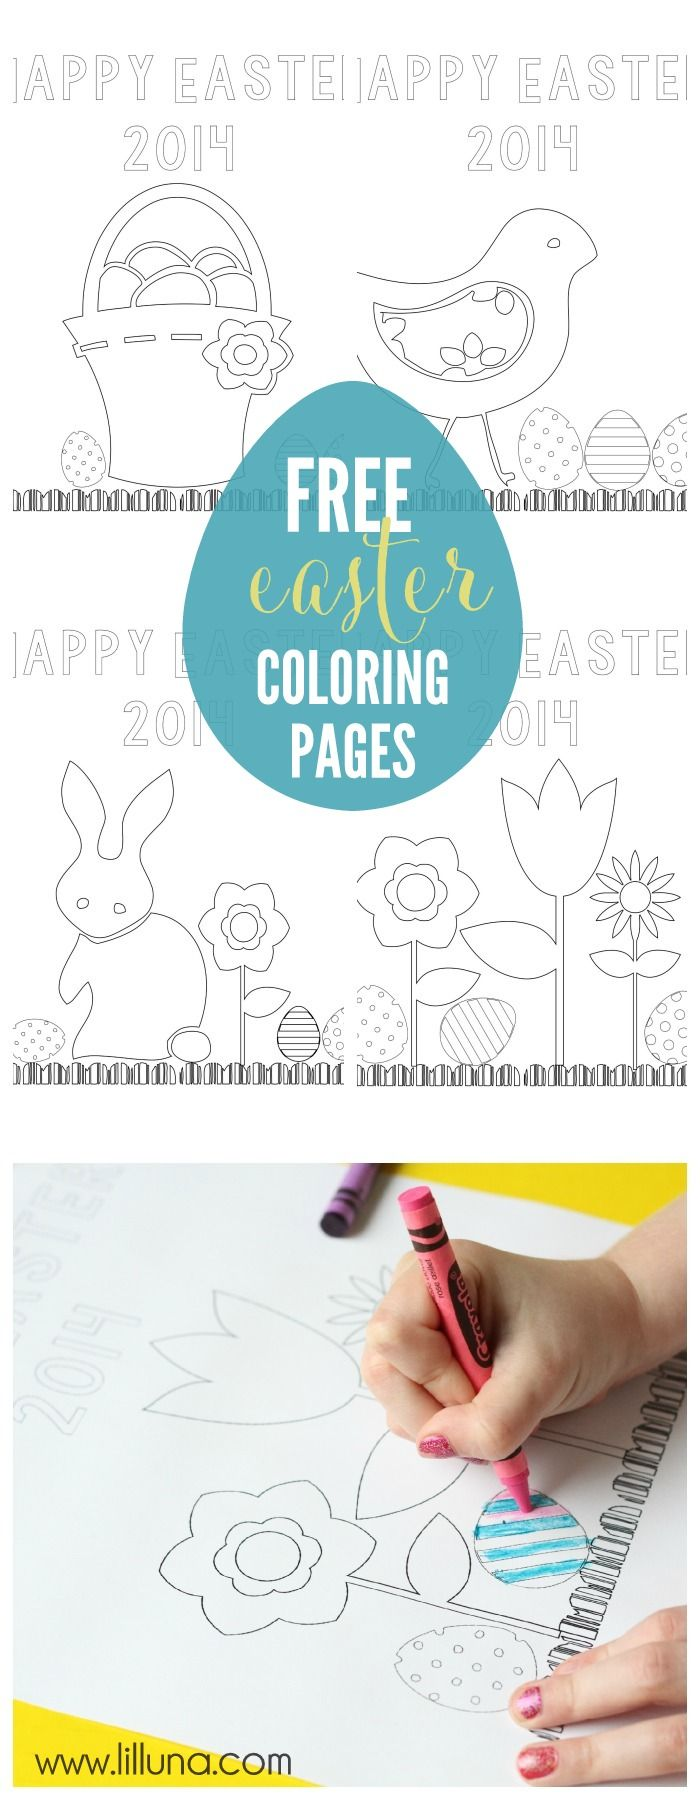 100 Easter Recipe Ideas Easy Family Friendly Lil Luna Free Easter Coloring Pages Easter Coloring Pages Easter Colouring